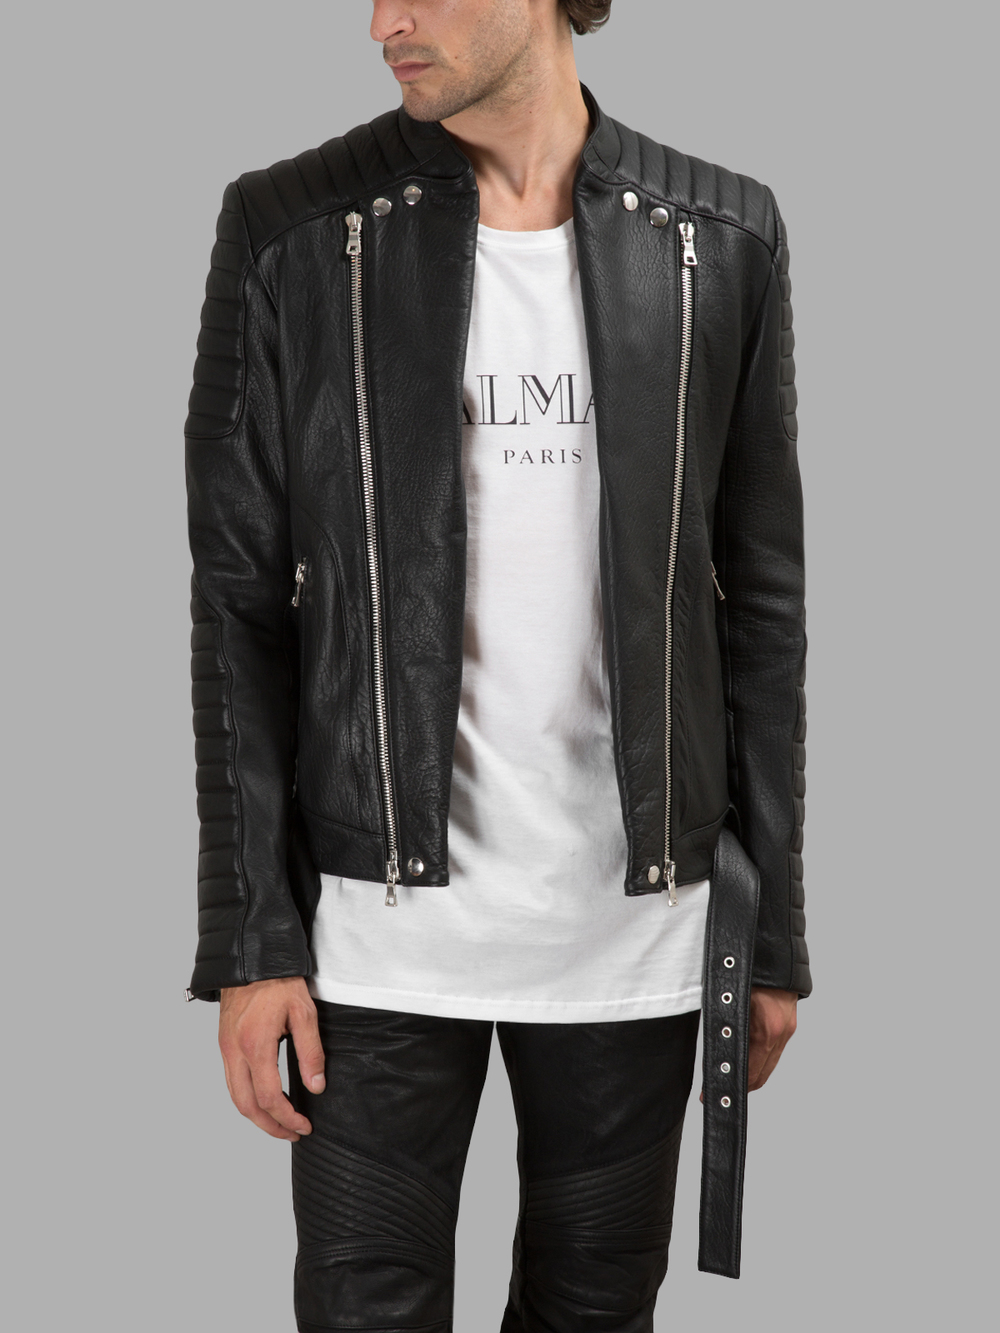 Balmain Sweatshirt | Balmain Dresses | Balmain Leather Jacket